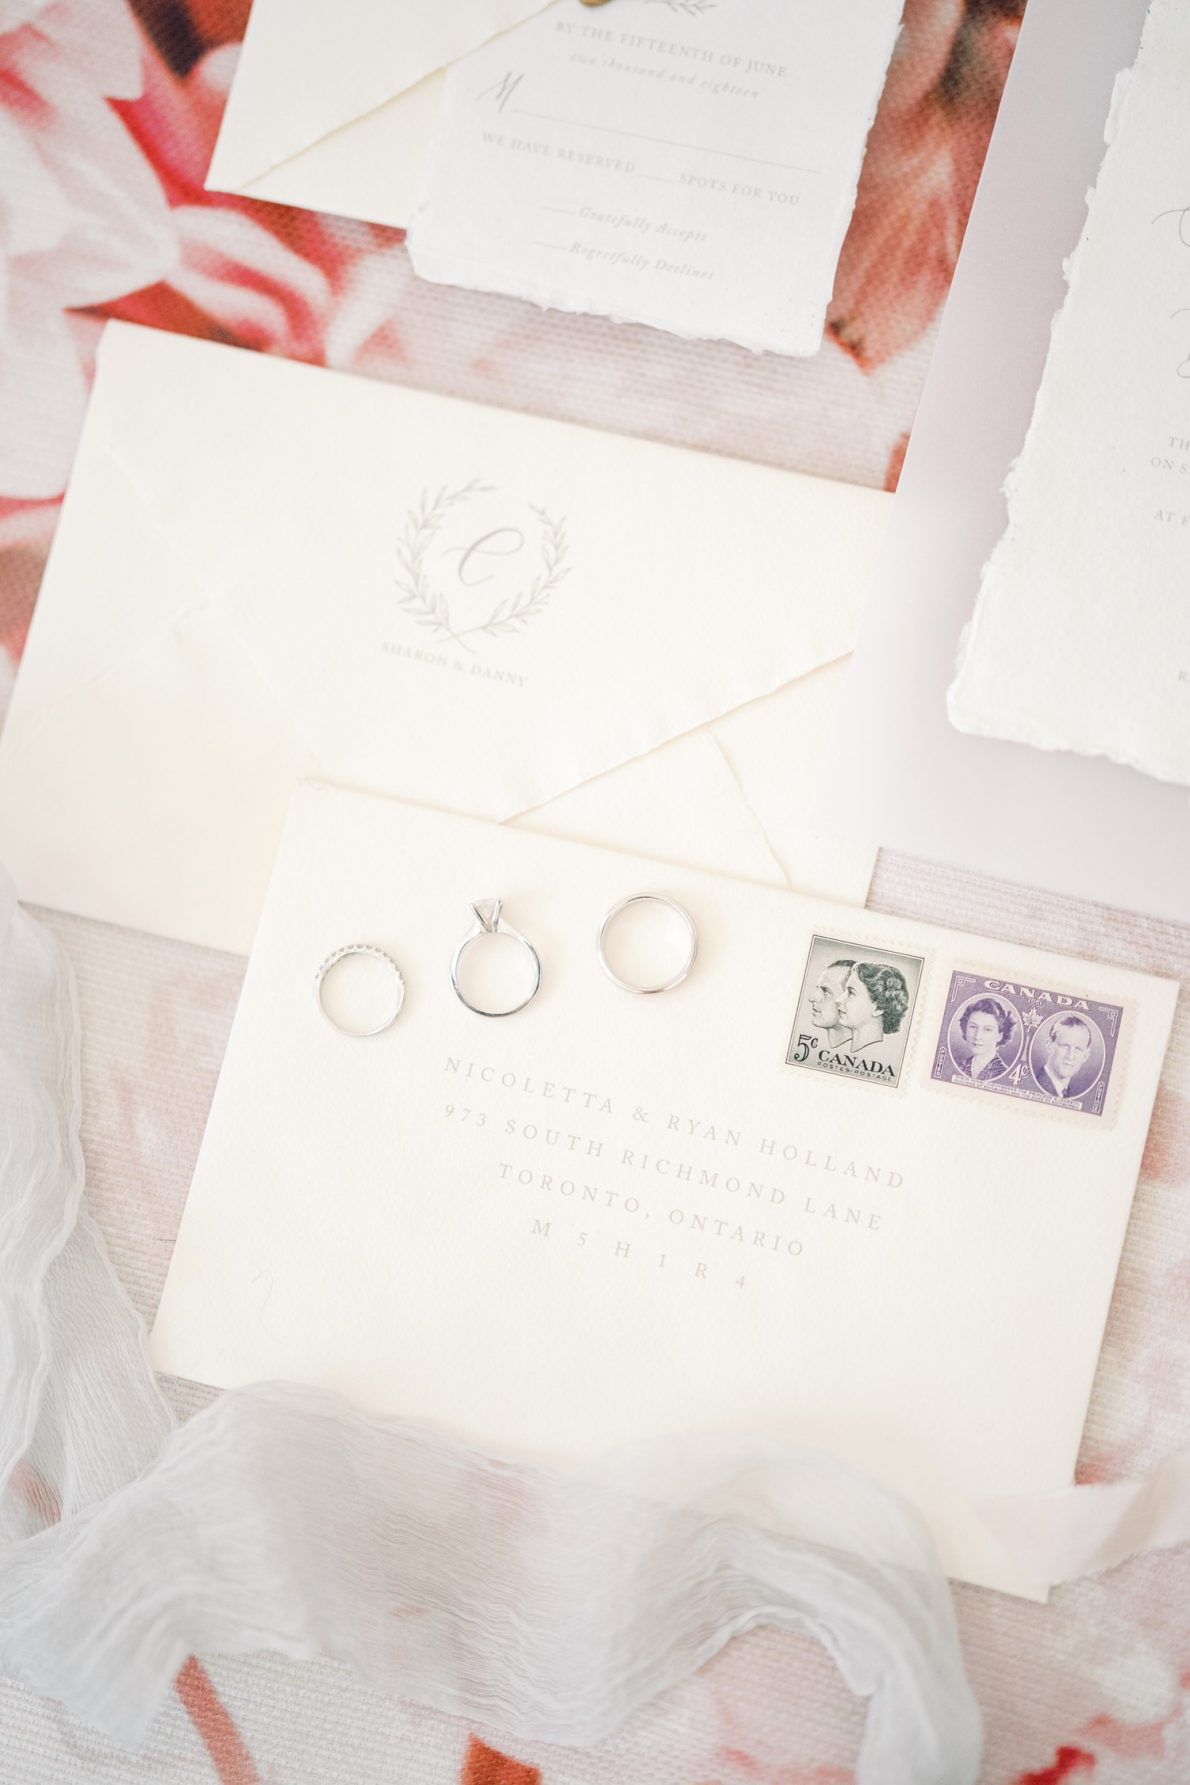 Vintage_Stamps_Invitations_Calligraphy-Wedding-Stationary-Ivory_and_Twine-Rhythm_Photography